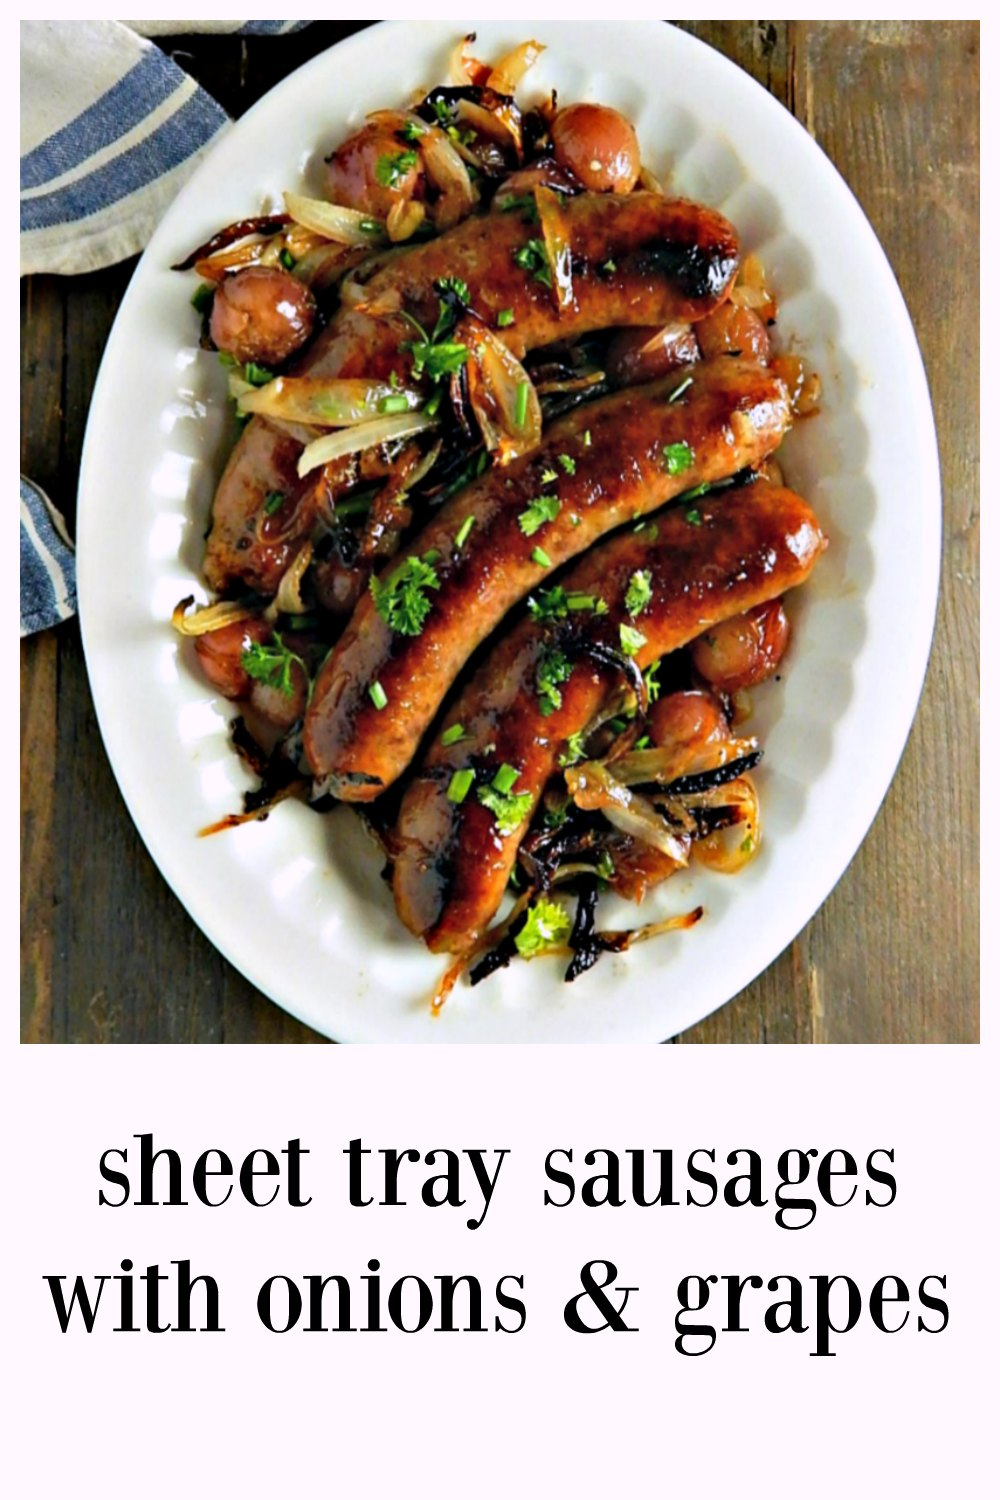 Fabulously rustic Sheet Tray Sausages with Onions & Grapes is fast, easy & perfect for family, company (maybe over polenta, or maybe as sandwiches for Game Day! Crazy Good! Try cooking any sausage on a sheet tray & you won't go back to the stove, ever! #Sausages #SheetTrayDinner #SausageSheetTrayDinner #SausagesGrapesOnions